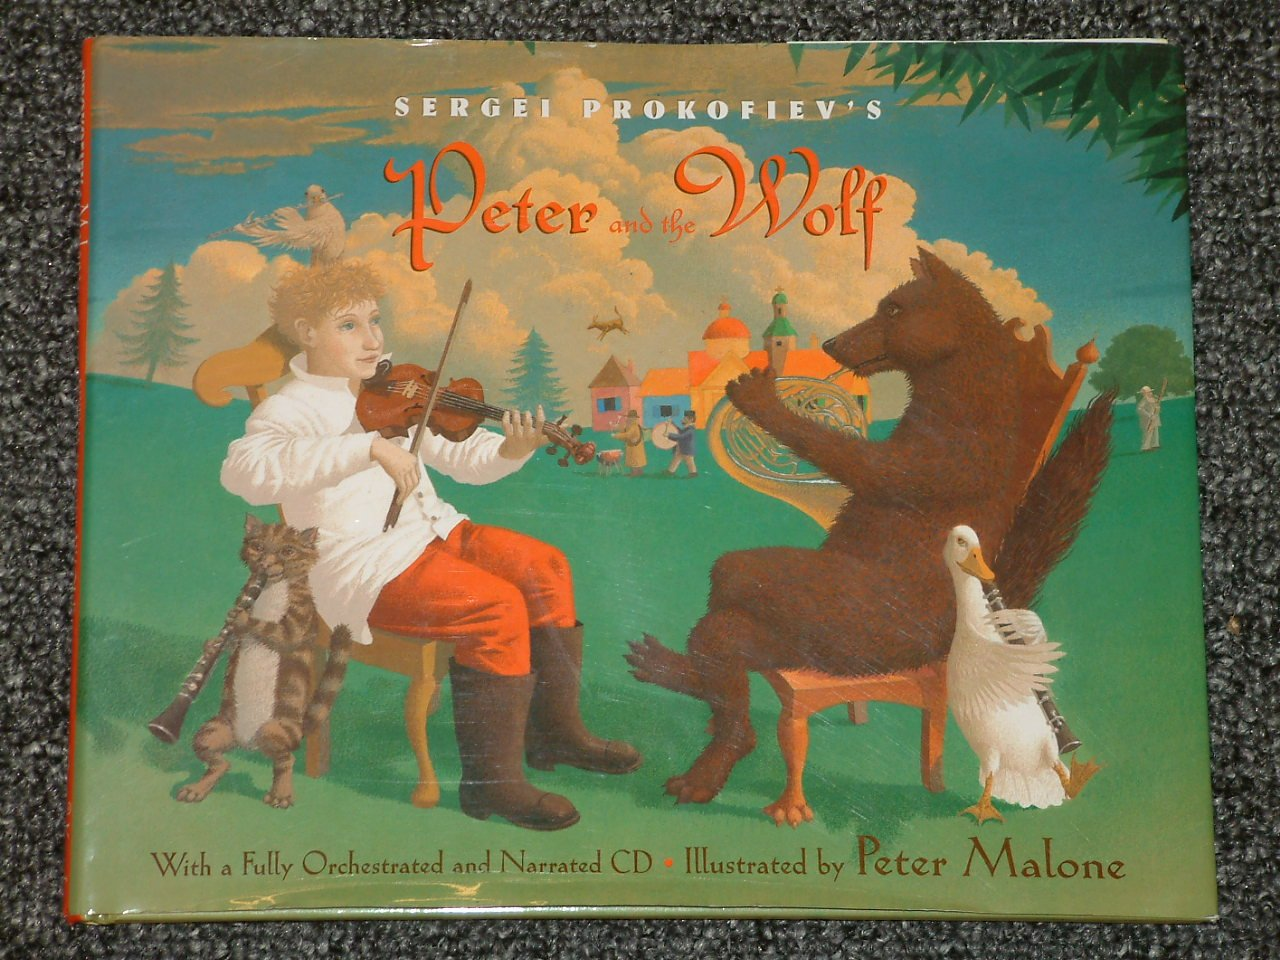 Sergei Prokofiev's Peter and the Wolf